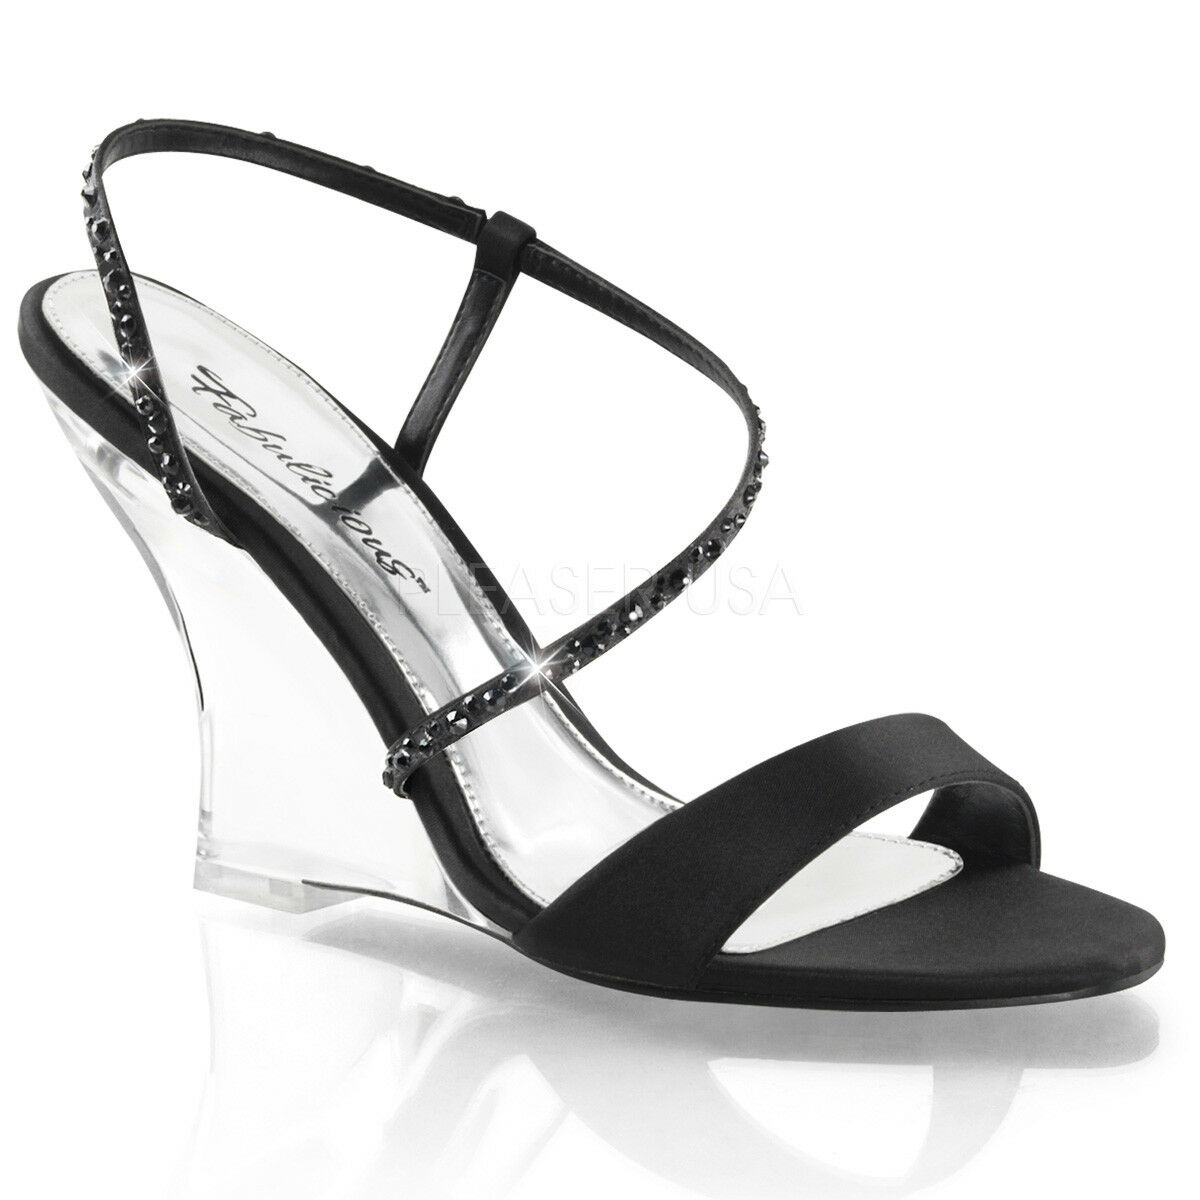 Fabulicious LOVELY-417 Strap Sandal 4 4 4  Heel a99326